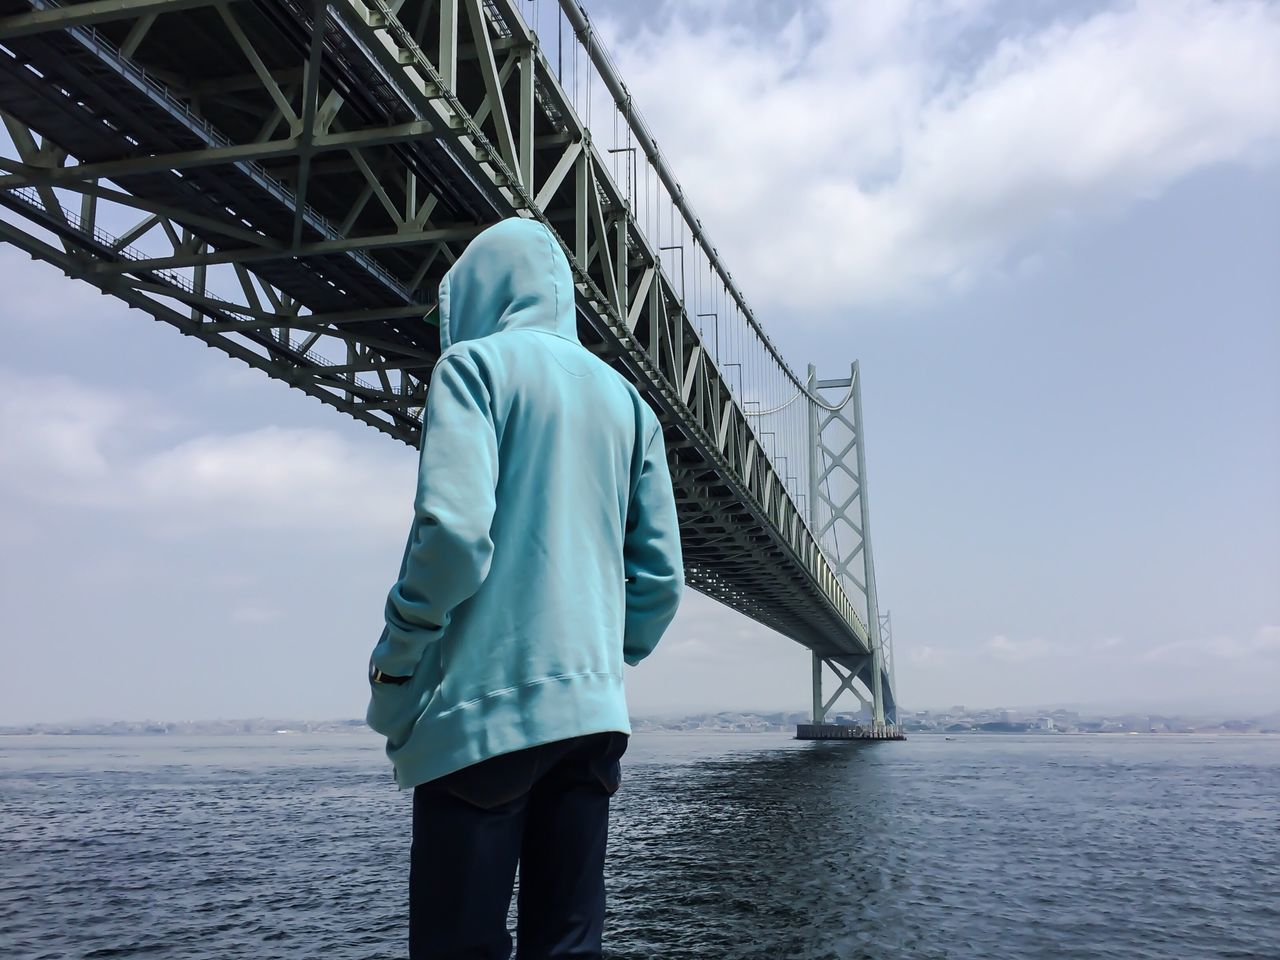 Rear view of person standing against bridge over river